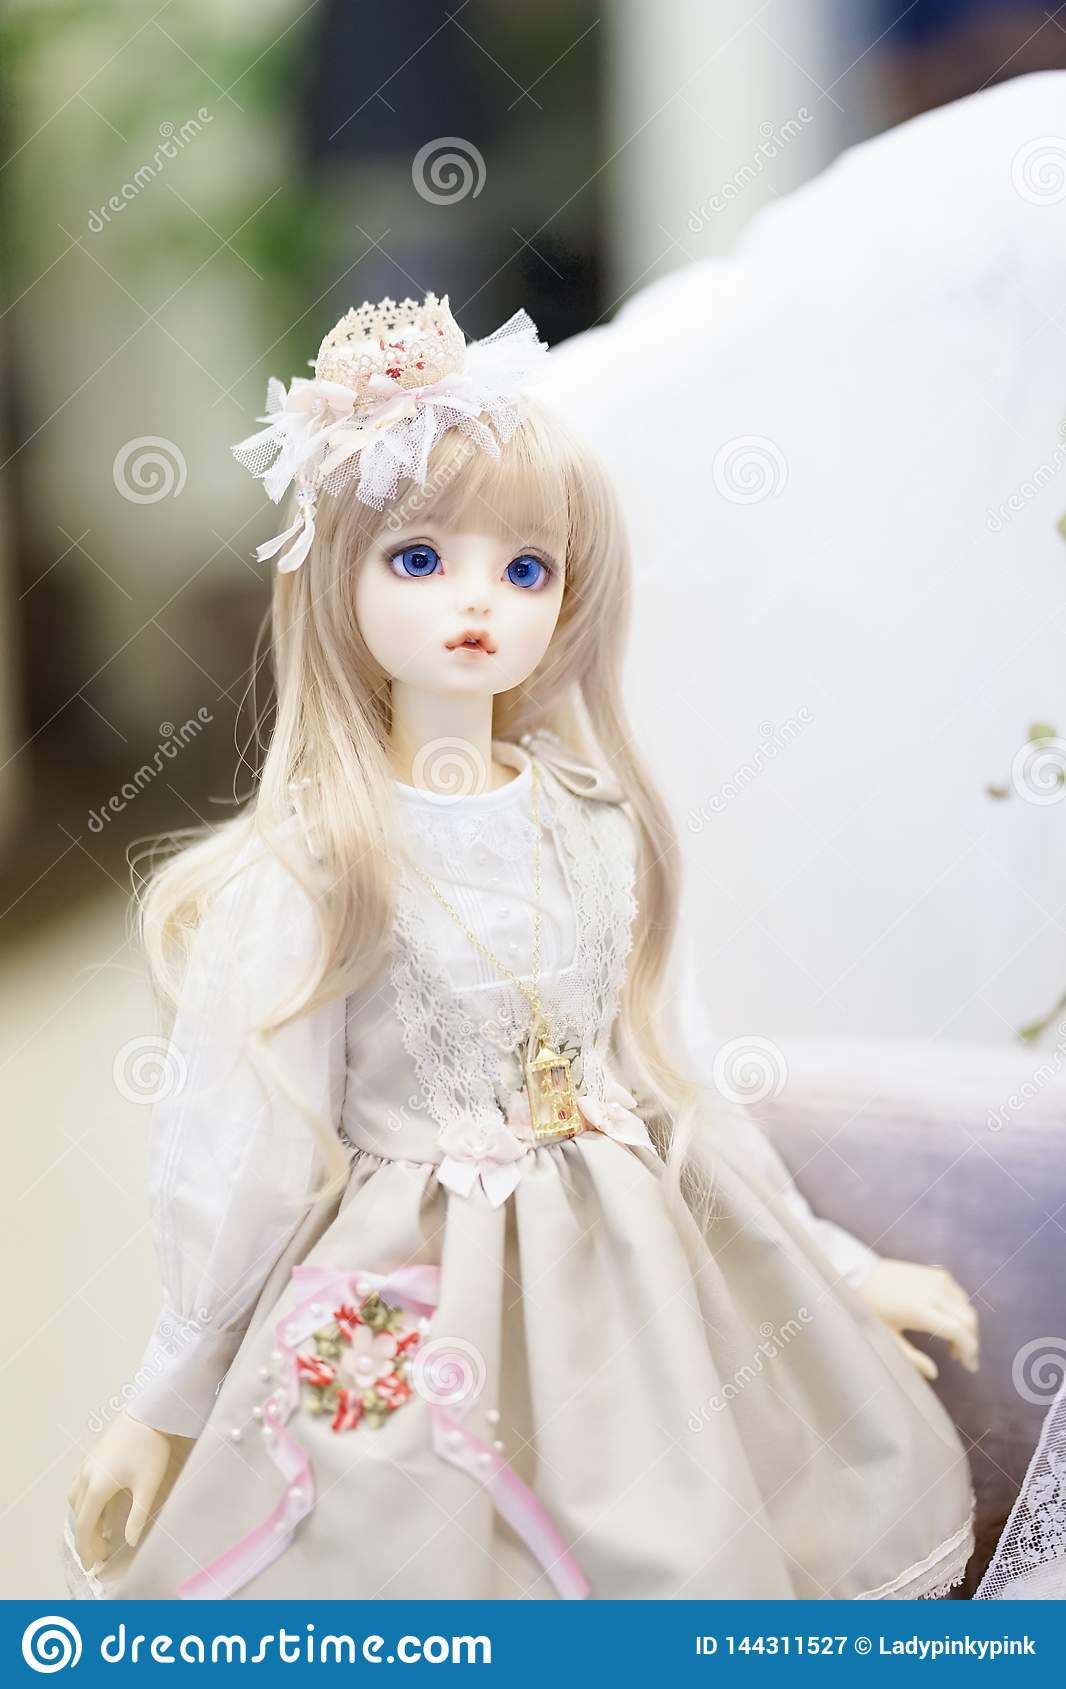 Cute BJD doll. BJD stands for Ball-Jointed+doll